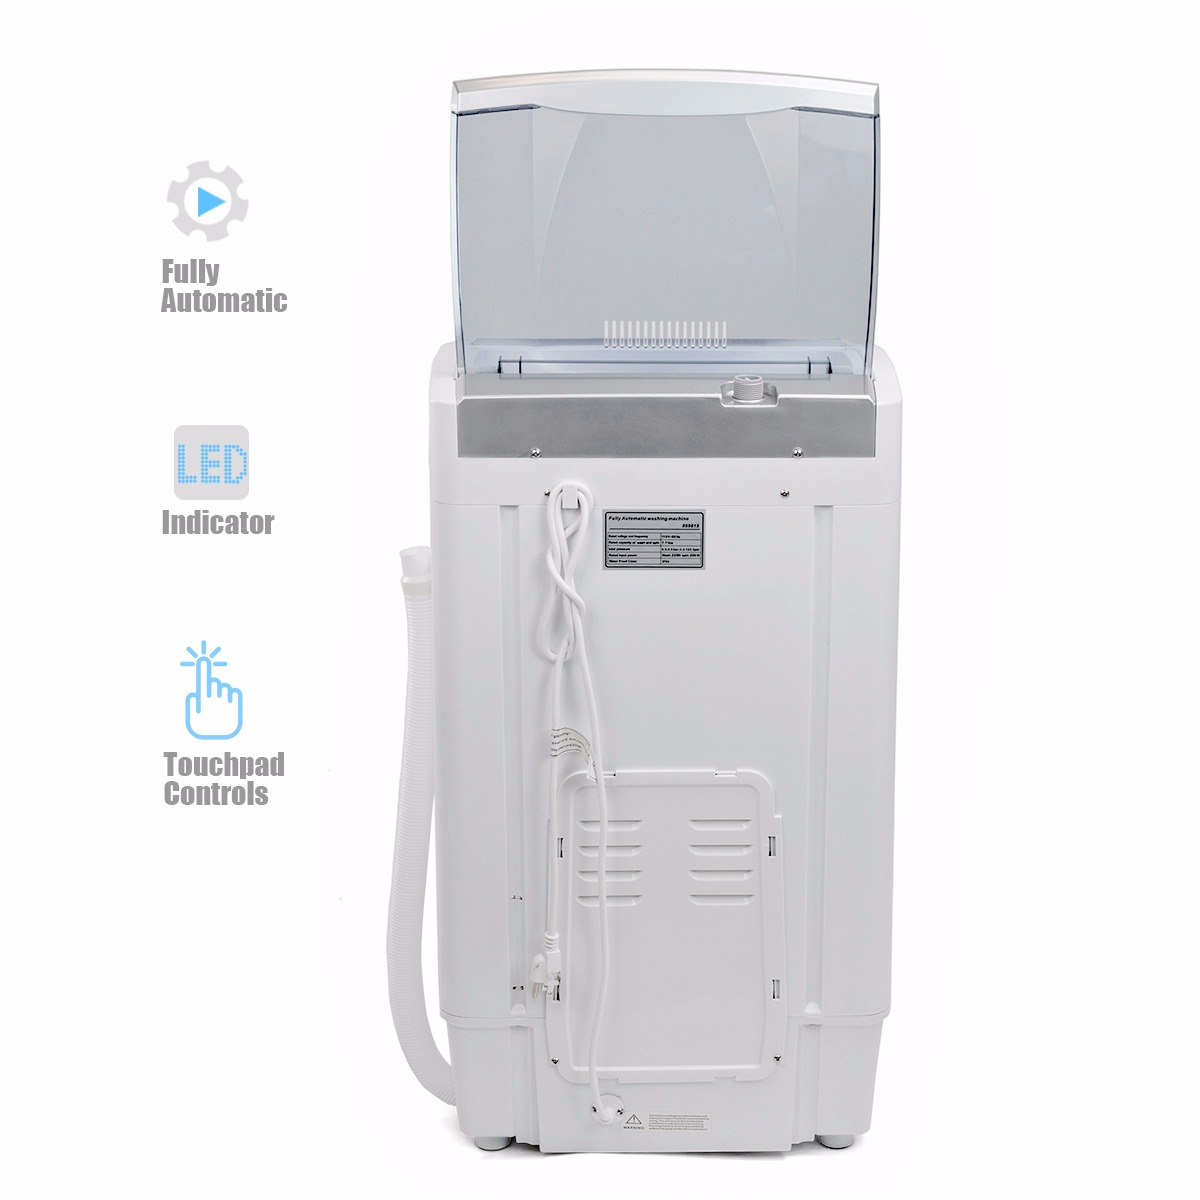 7.7LB Automatic MINI Washer and Spinner Dryer Portable Compact ...